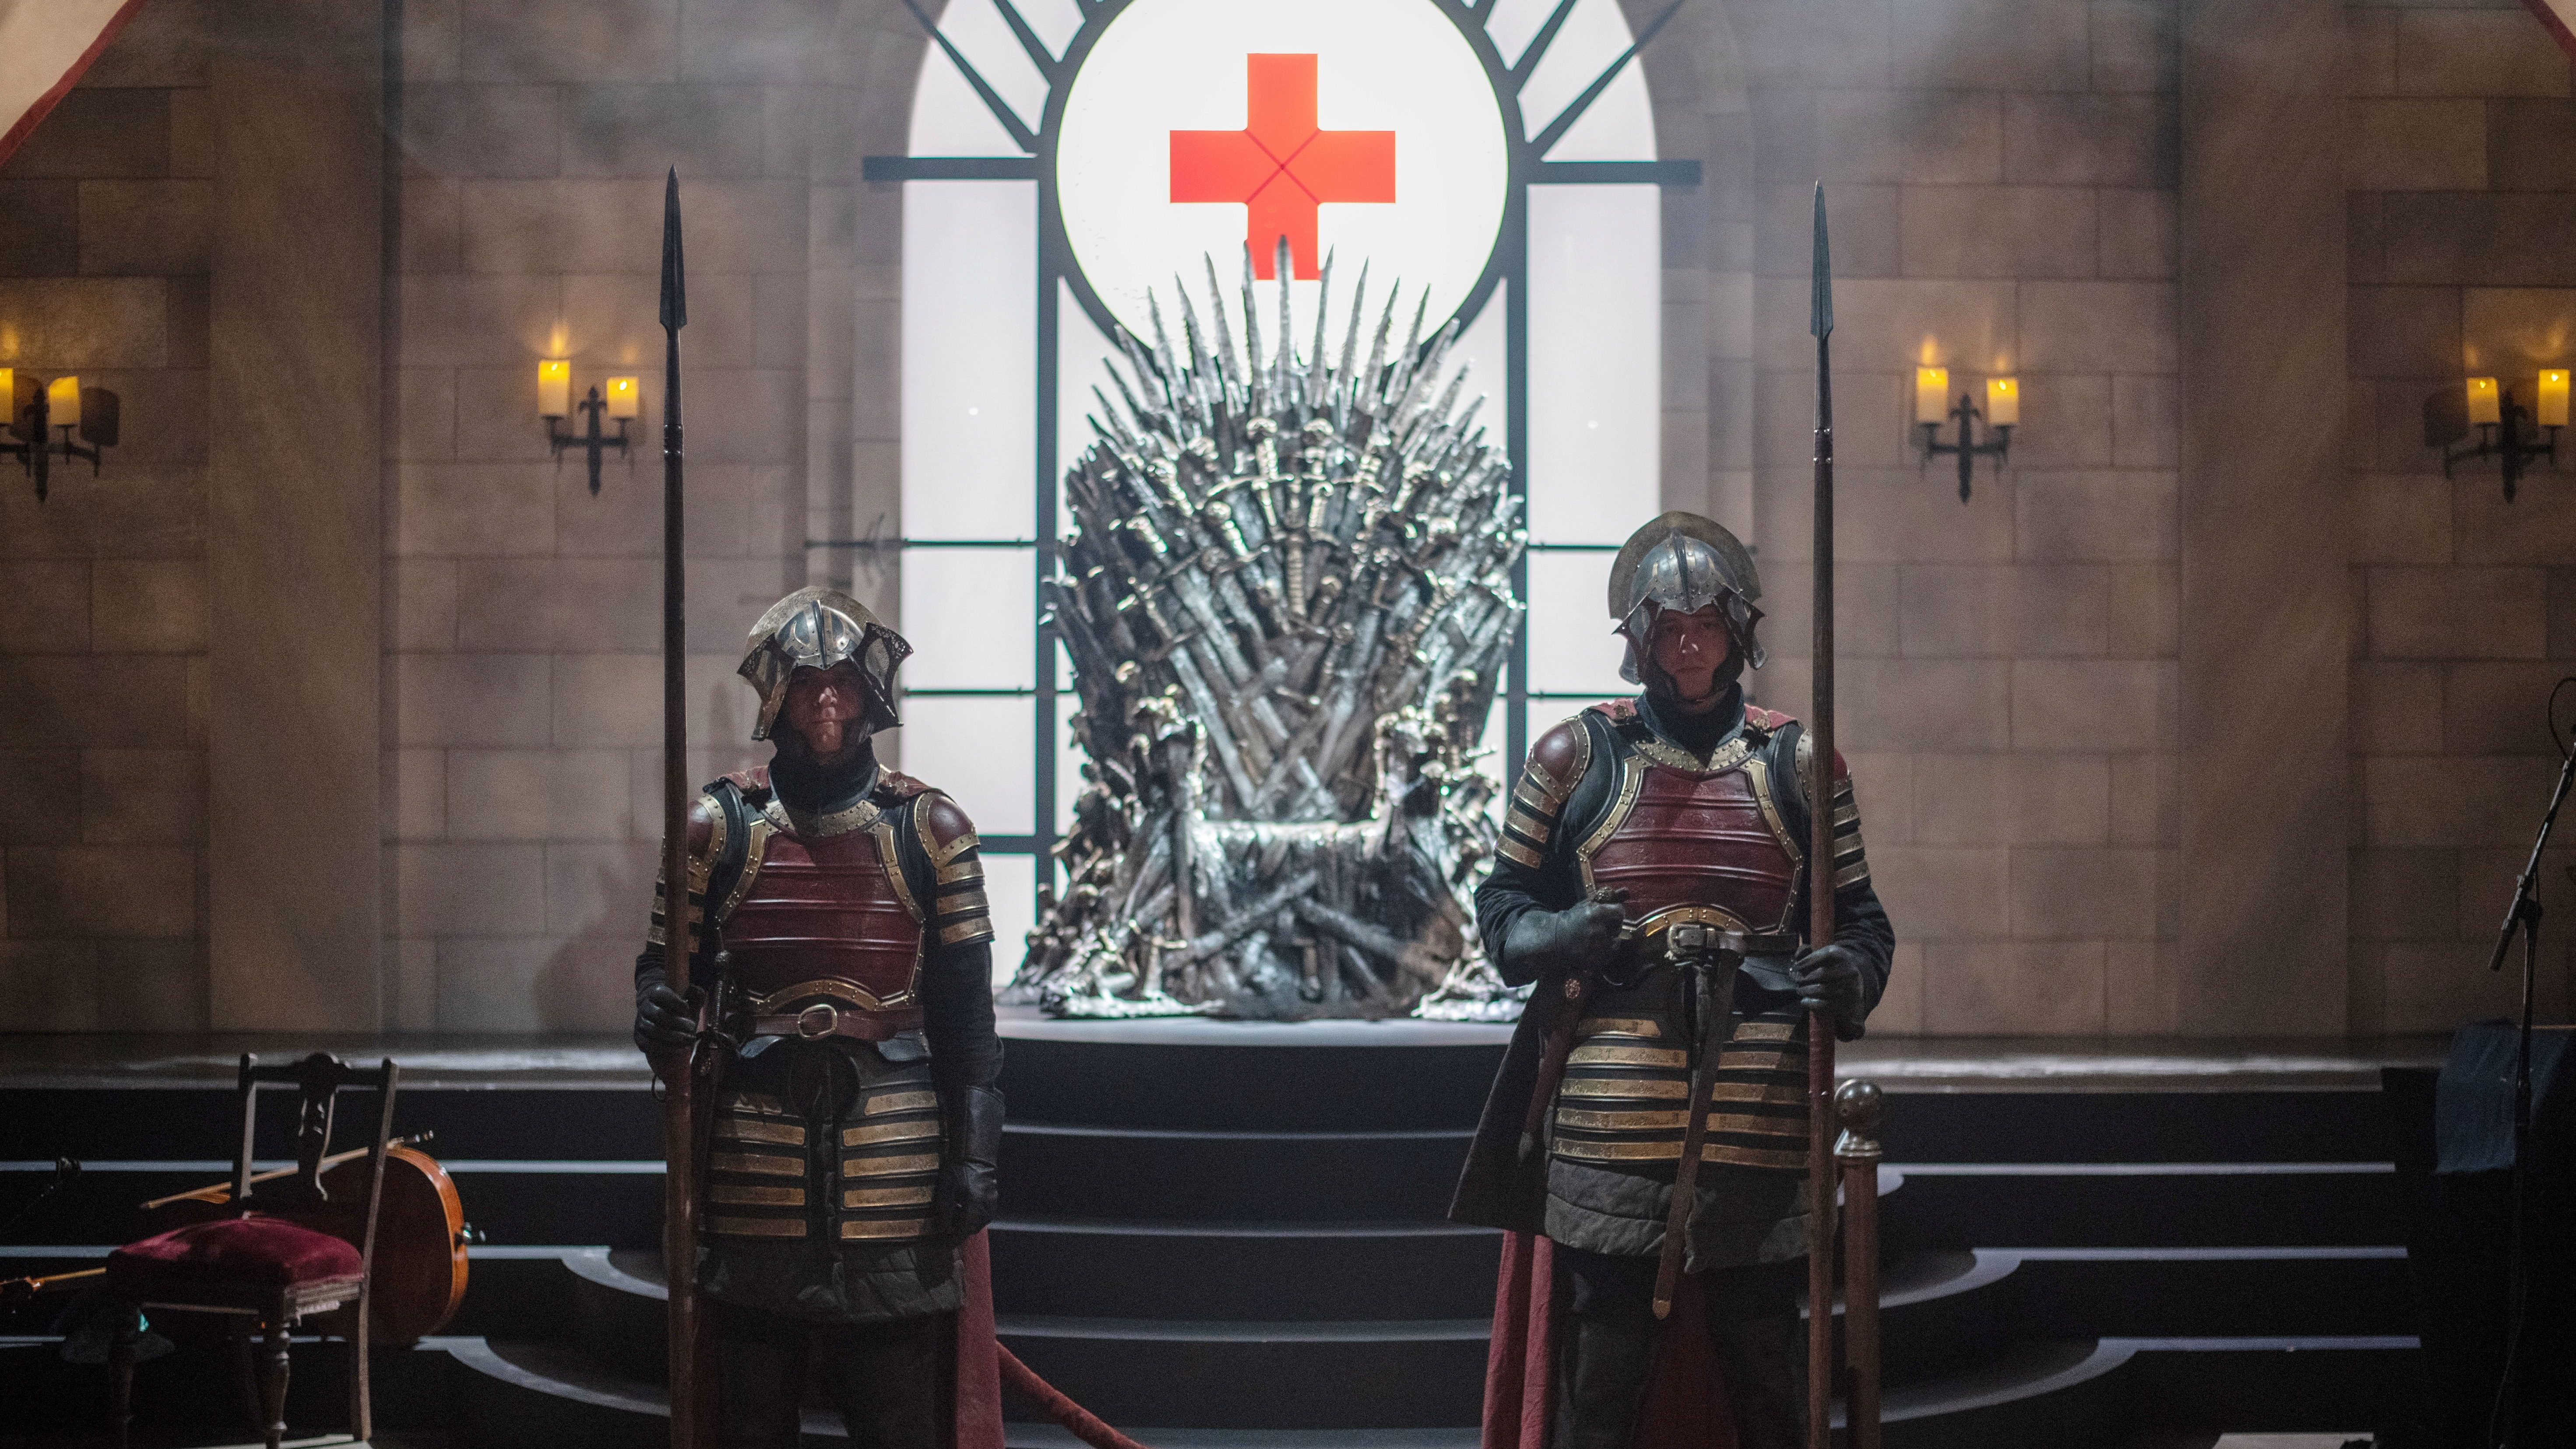 Hotstar to air Game of Thrones Season 8 uncensored in India